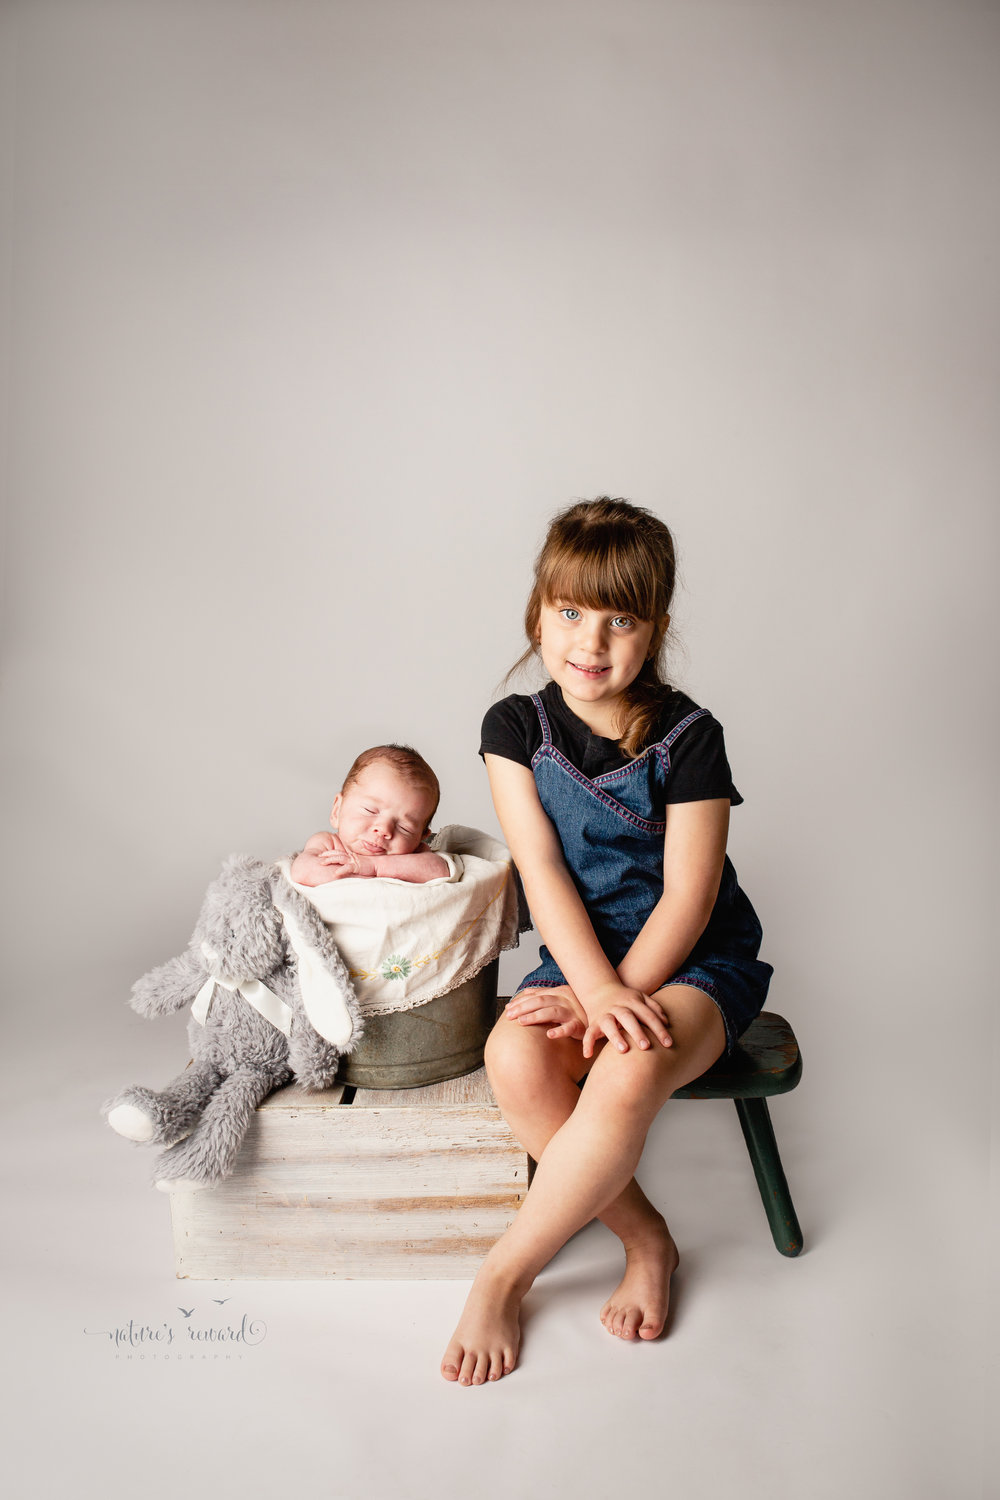 Sibling portrait with newborn on a box in a pail and showing darling kissing lips with his pal the rabbit sitting next to him is his sister with beautiful eyes in this portrait by Nature's Reward Photography